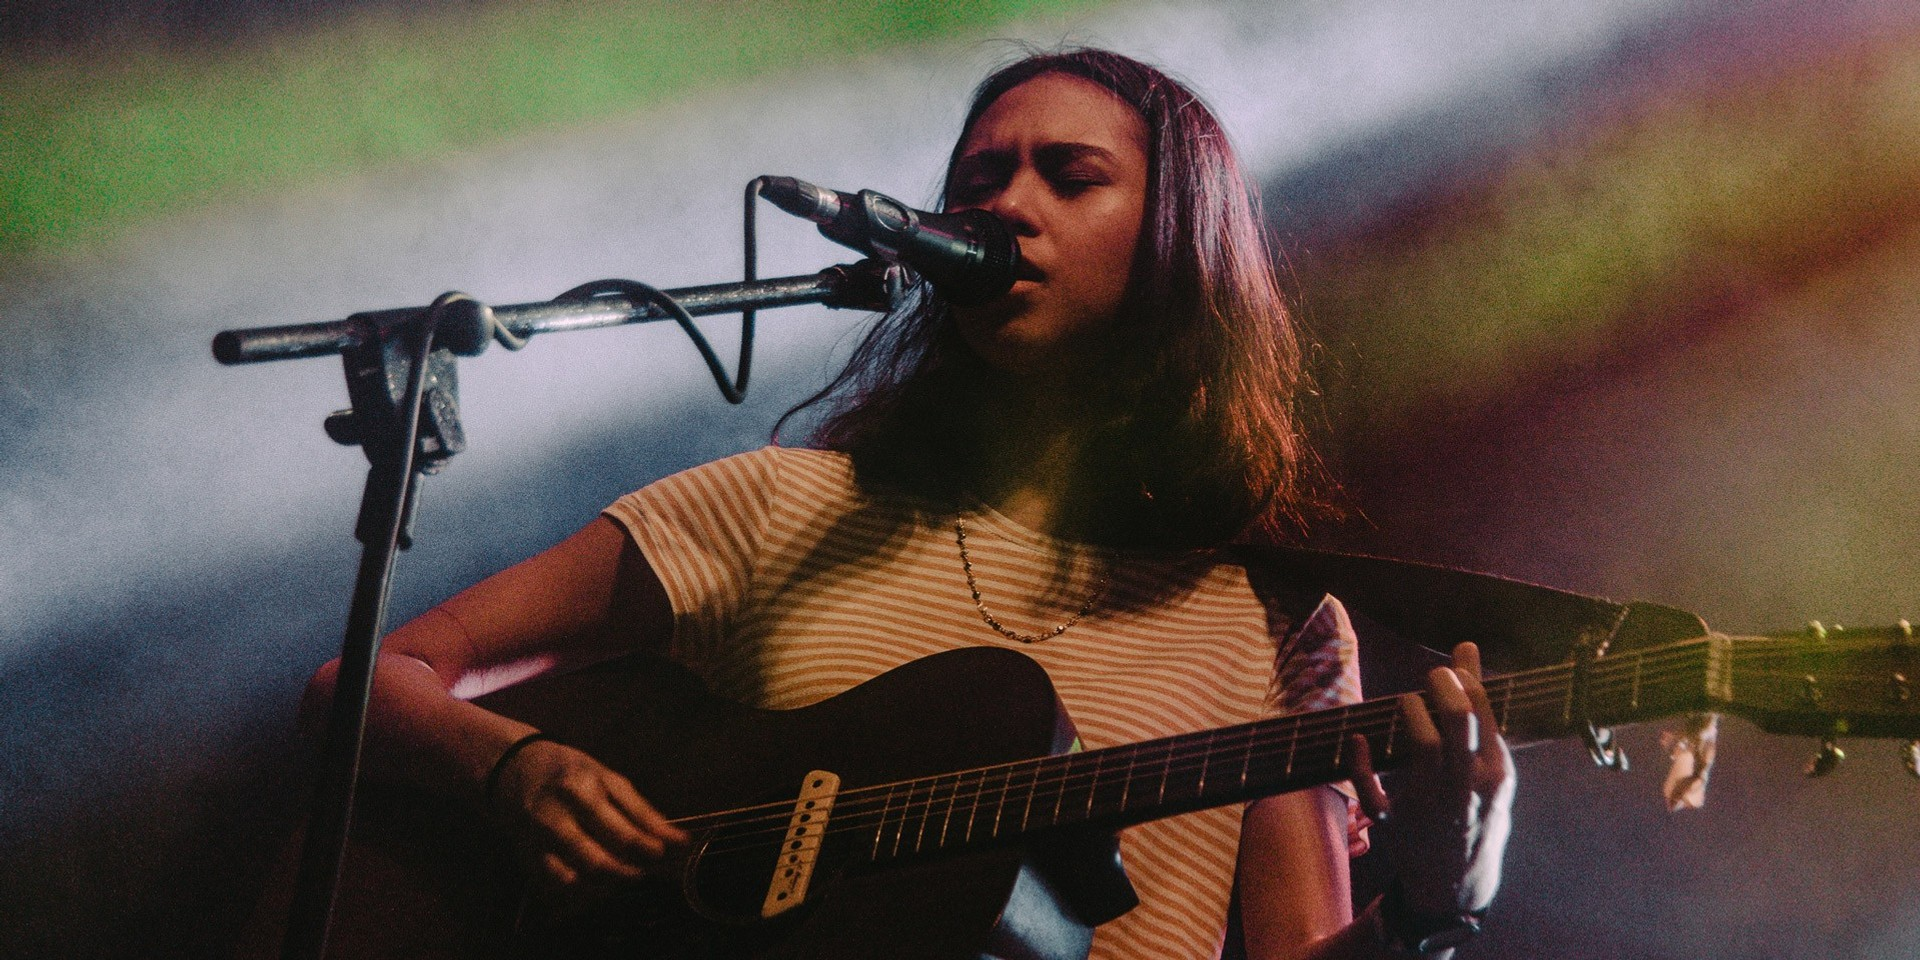 Clara Benin surprises fans with stripped down performance – watch